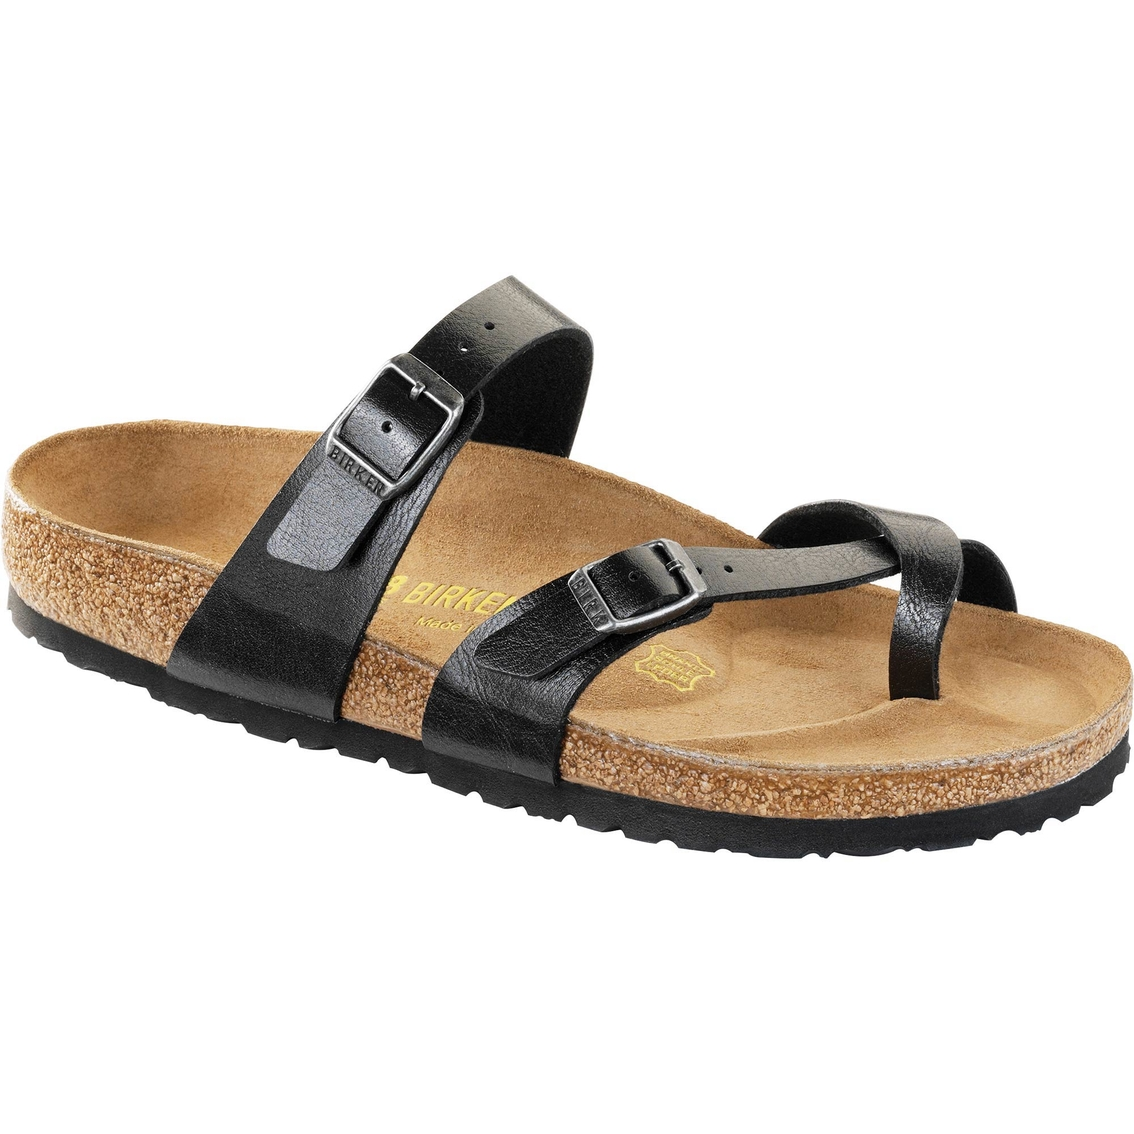 1c1e0d9d7 Birkenstock Women s Mayari Adjustable Two Strap Sandals